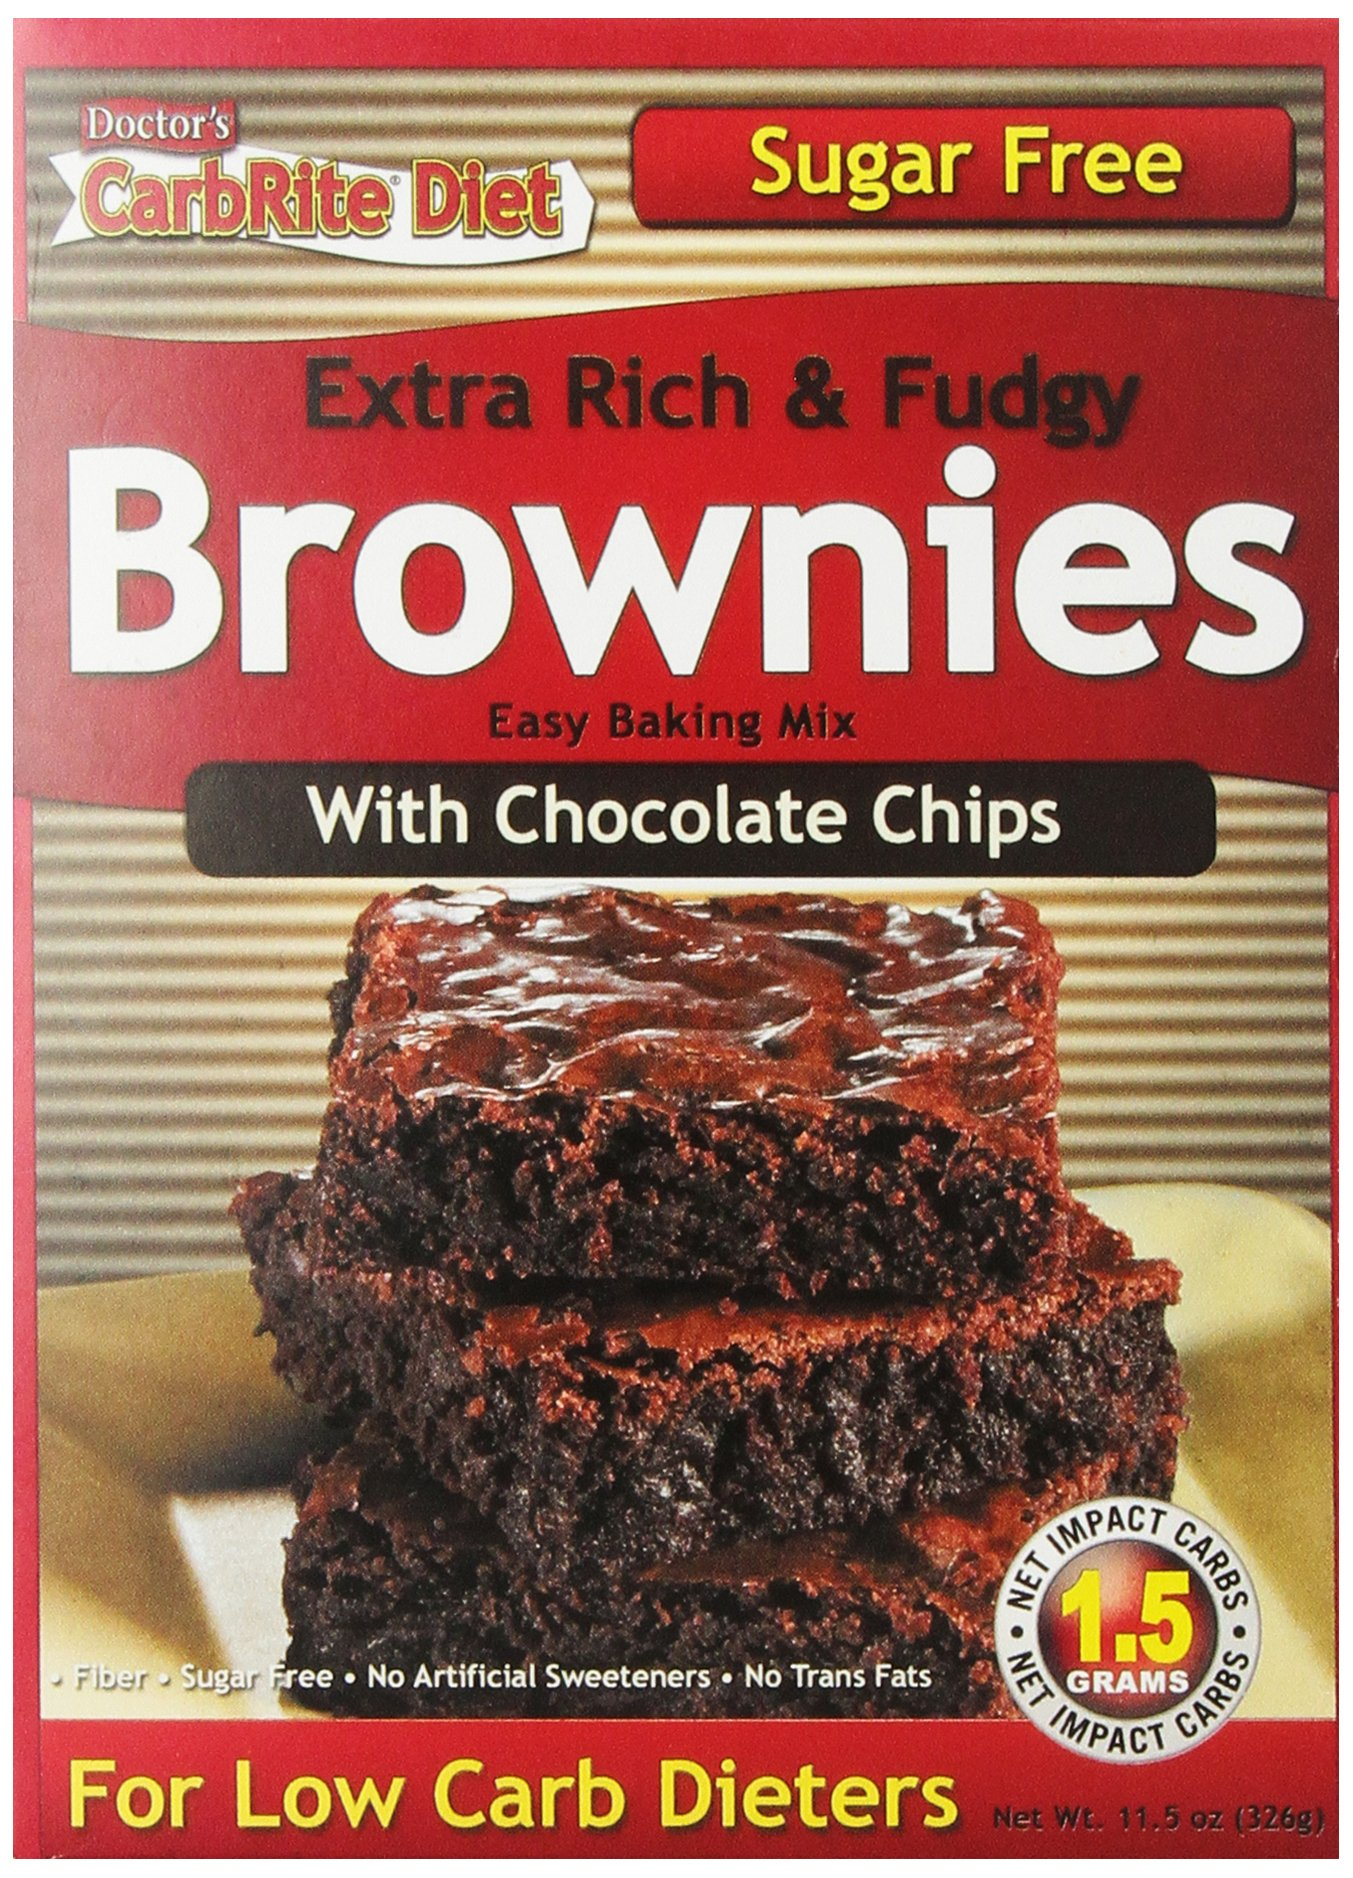 Doctor's CarbRite Diet – Sugar Free Chocolate Chip Brownie Mix, 11.5 oz